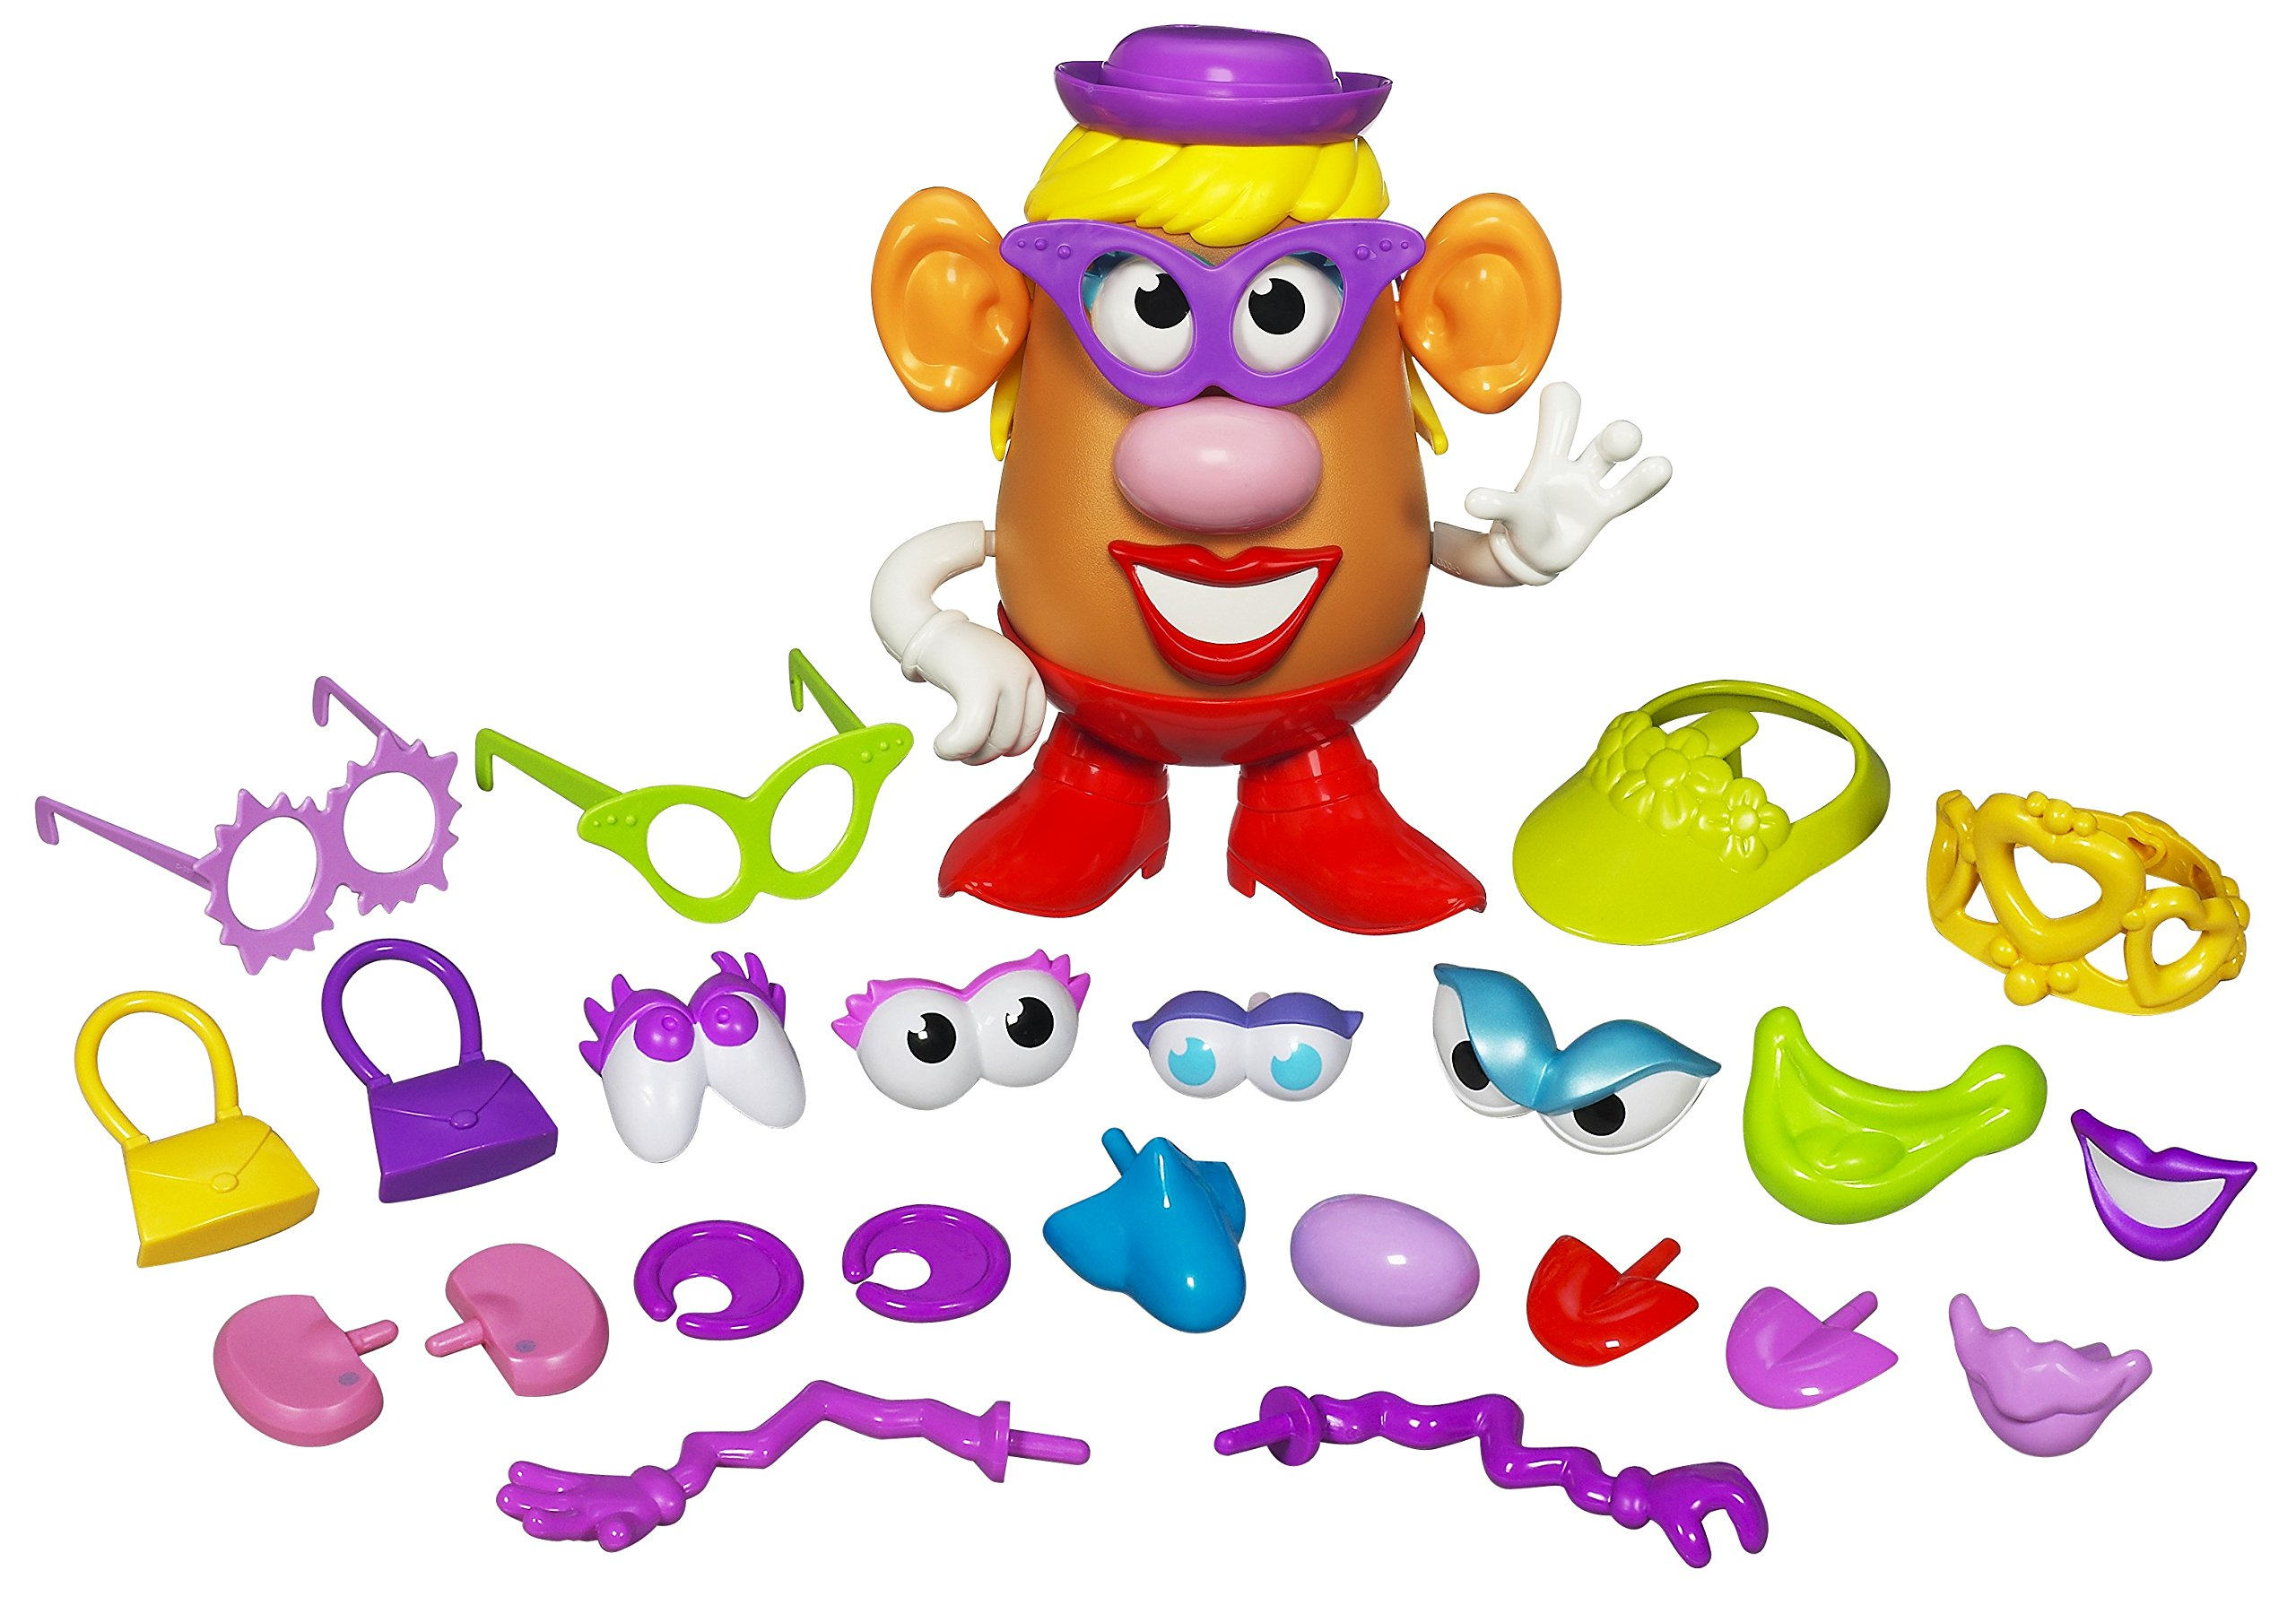 Playskool Mrs. Potato Head Silly Suitcase Parts and Pieces Toddler Toy for Kids (Amazon Exclusive) by Mrs. Potato Head